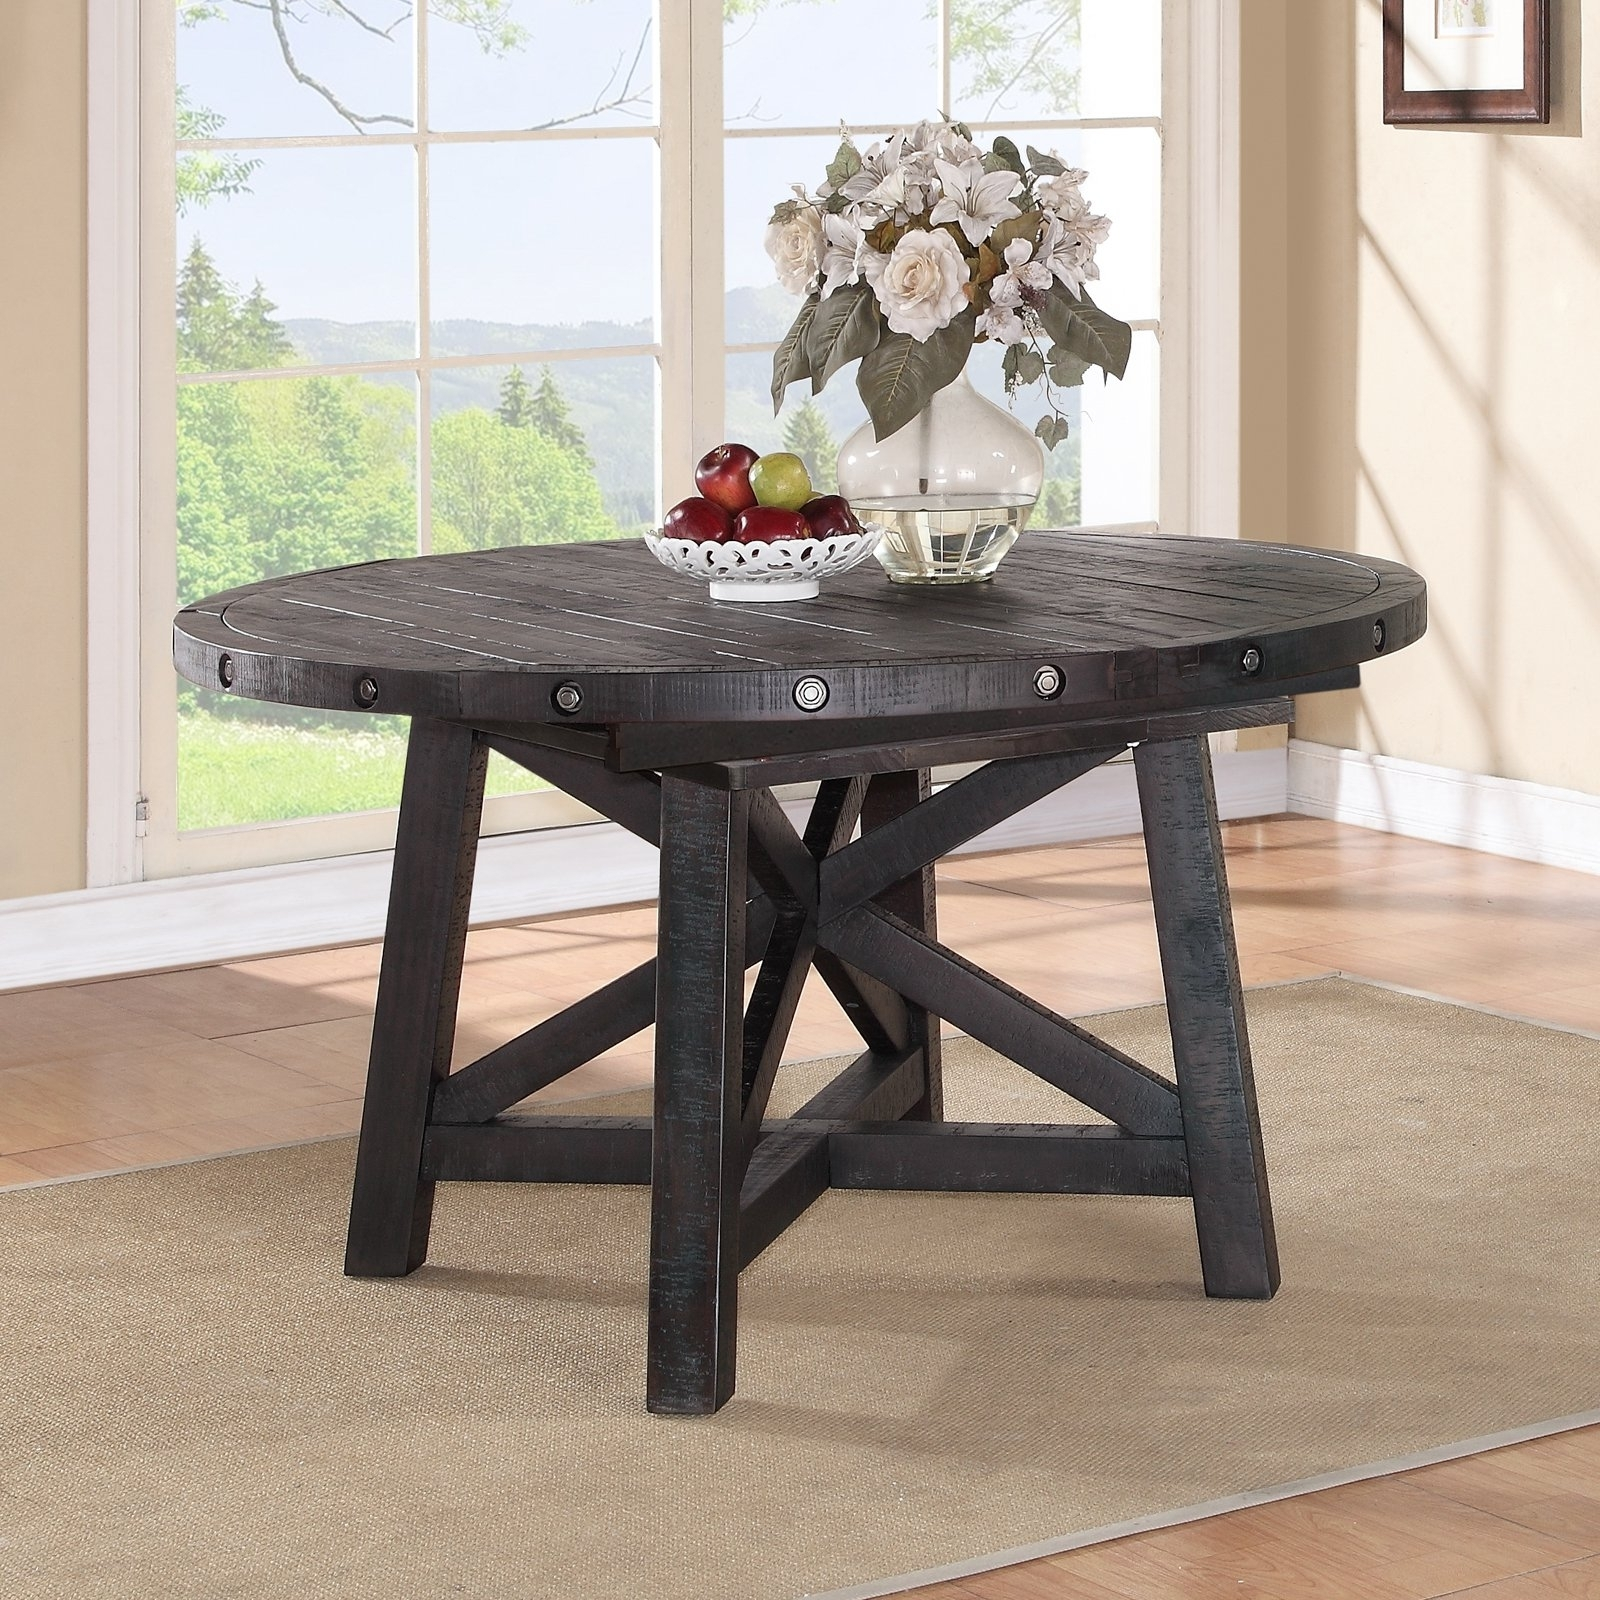 Modus Yosemite Solid Wood Round Extension Table – Cafe | Hayneedle Regarding Newest Lassen Extension Rectangle Dining Tables (Image 11 of 20)